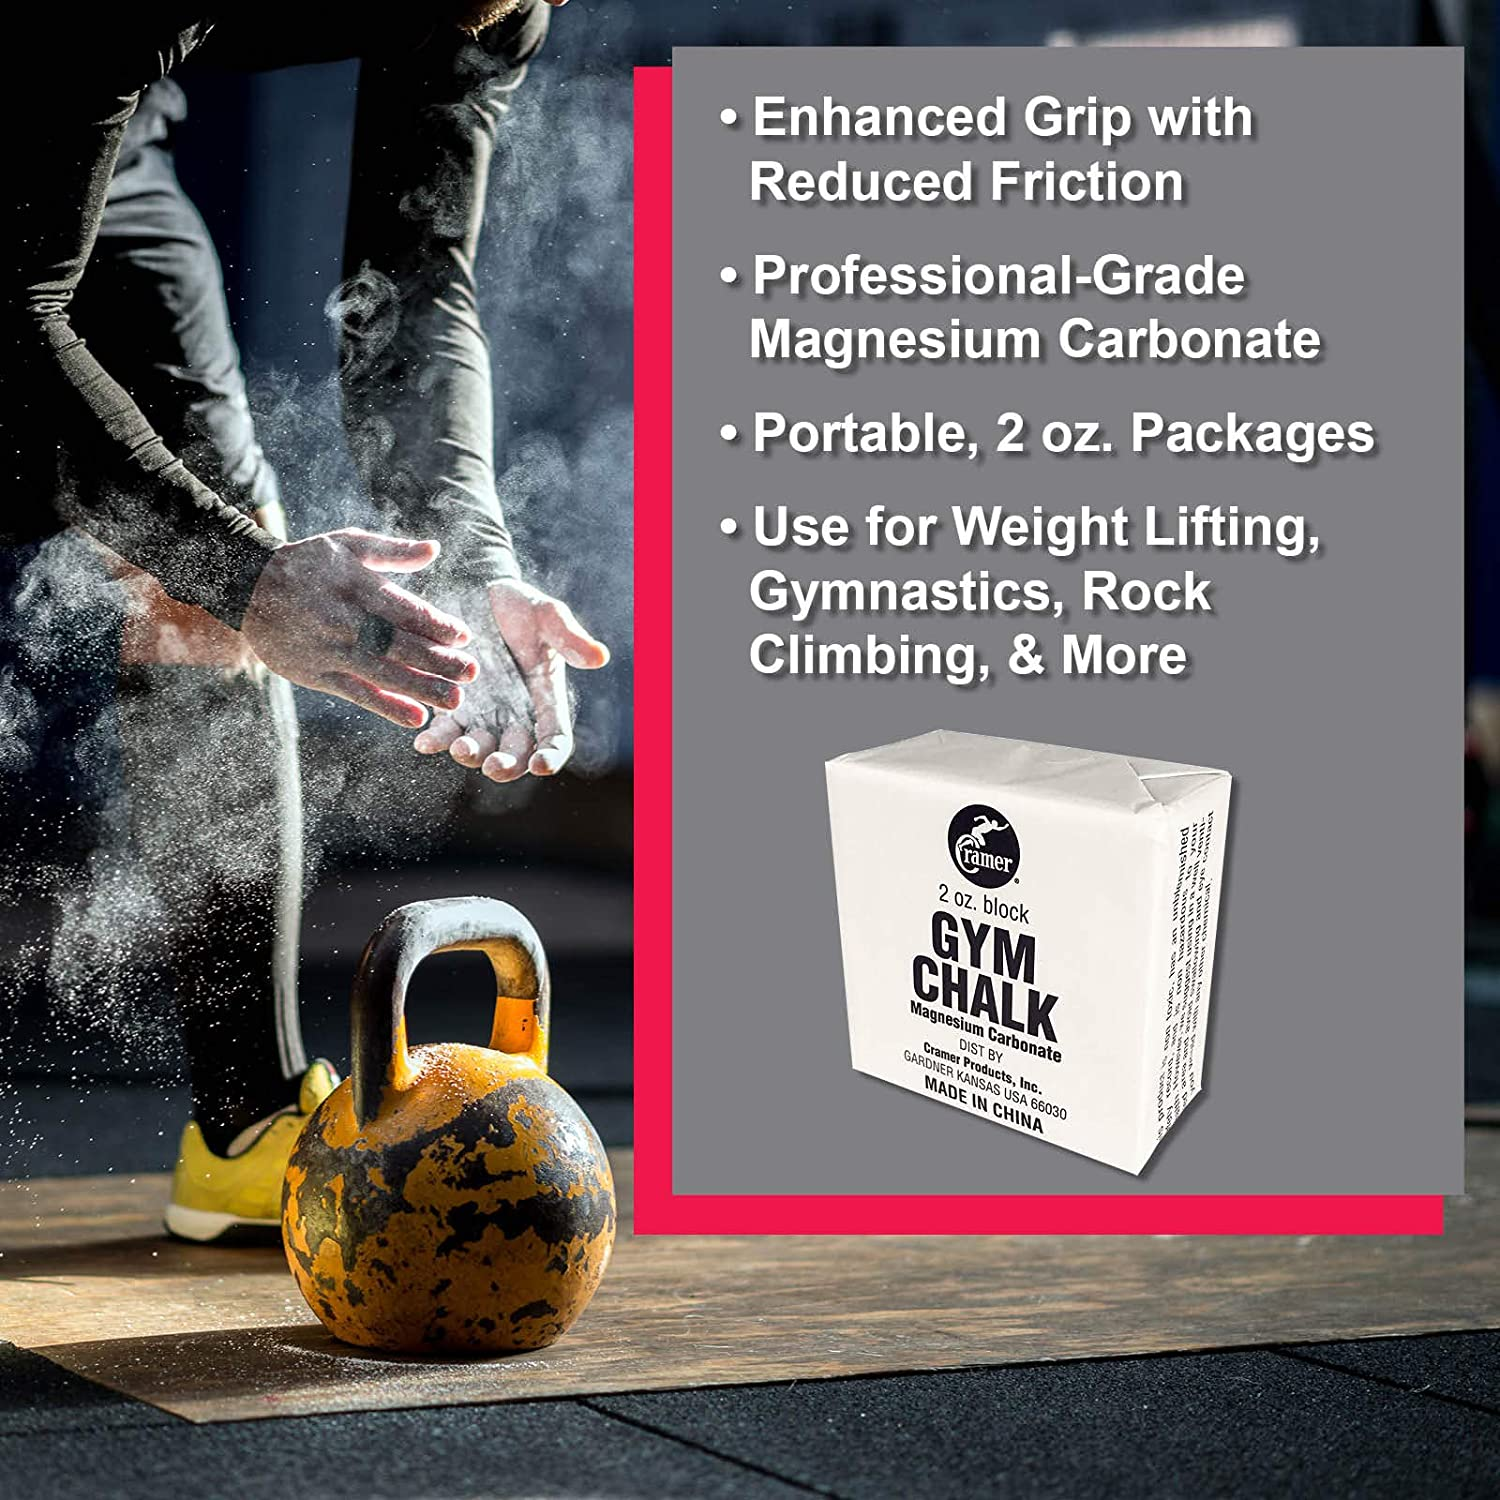 Amazon.com : Cramer Block Chalk & Liquid Gym Chalk, Magnesium Carbonate for Better Grip in Gymnastics, Weightlifting, Power Lifting, Pole Fitness, ...